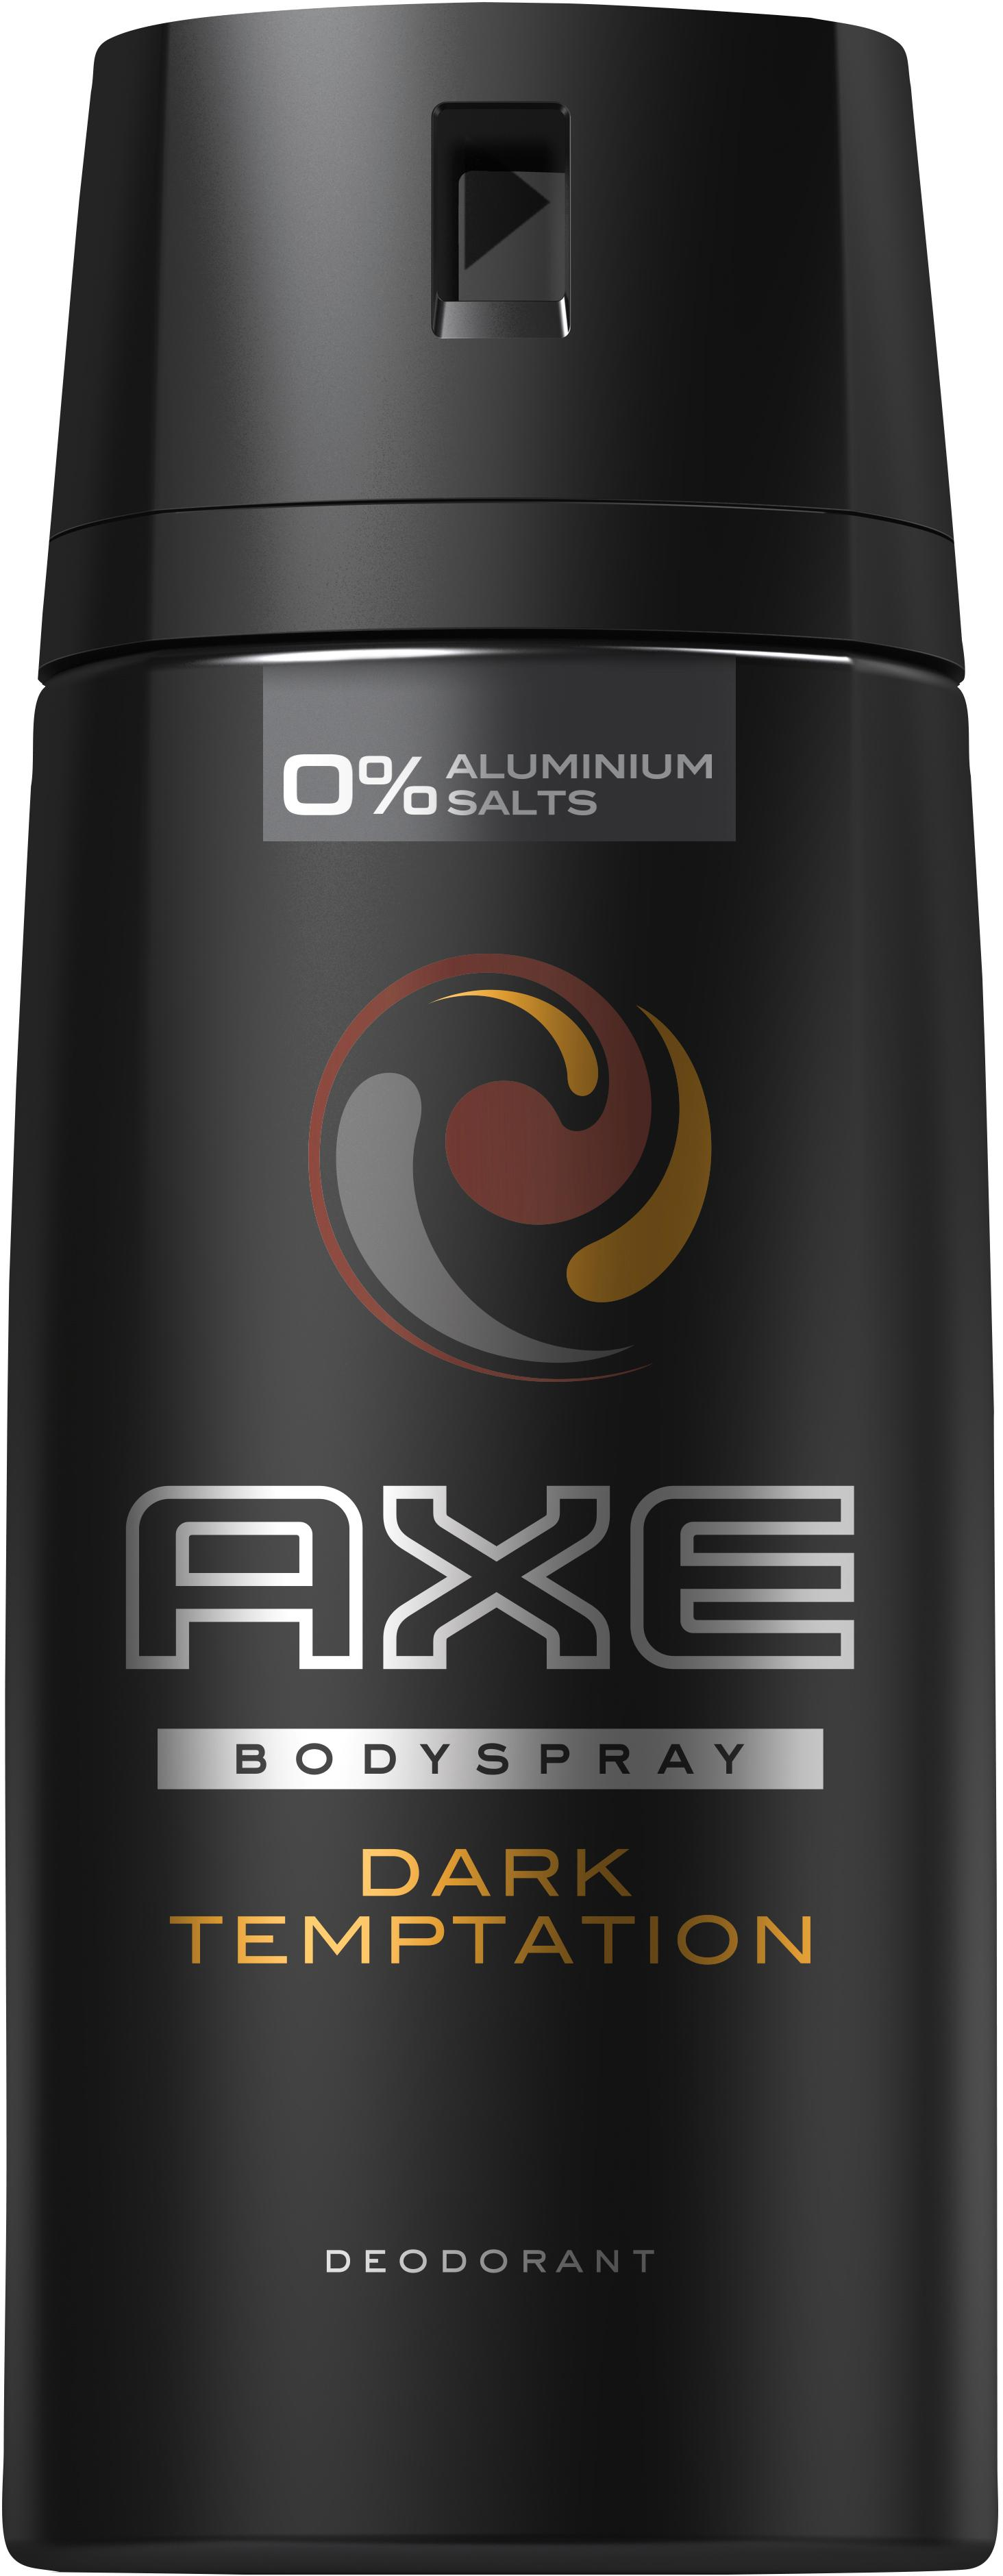 axe mini bodyspray dark temptation 6er pack 6 x 35ml beauty. Black Bedroom Furniture Sets. Home Design Ideas